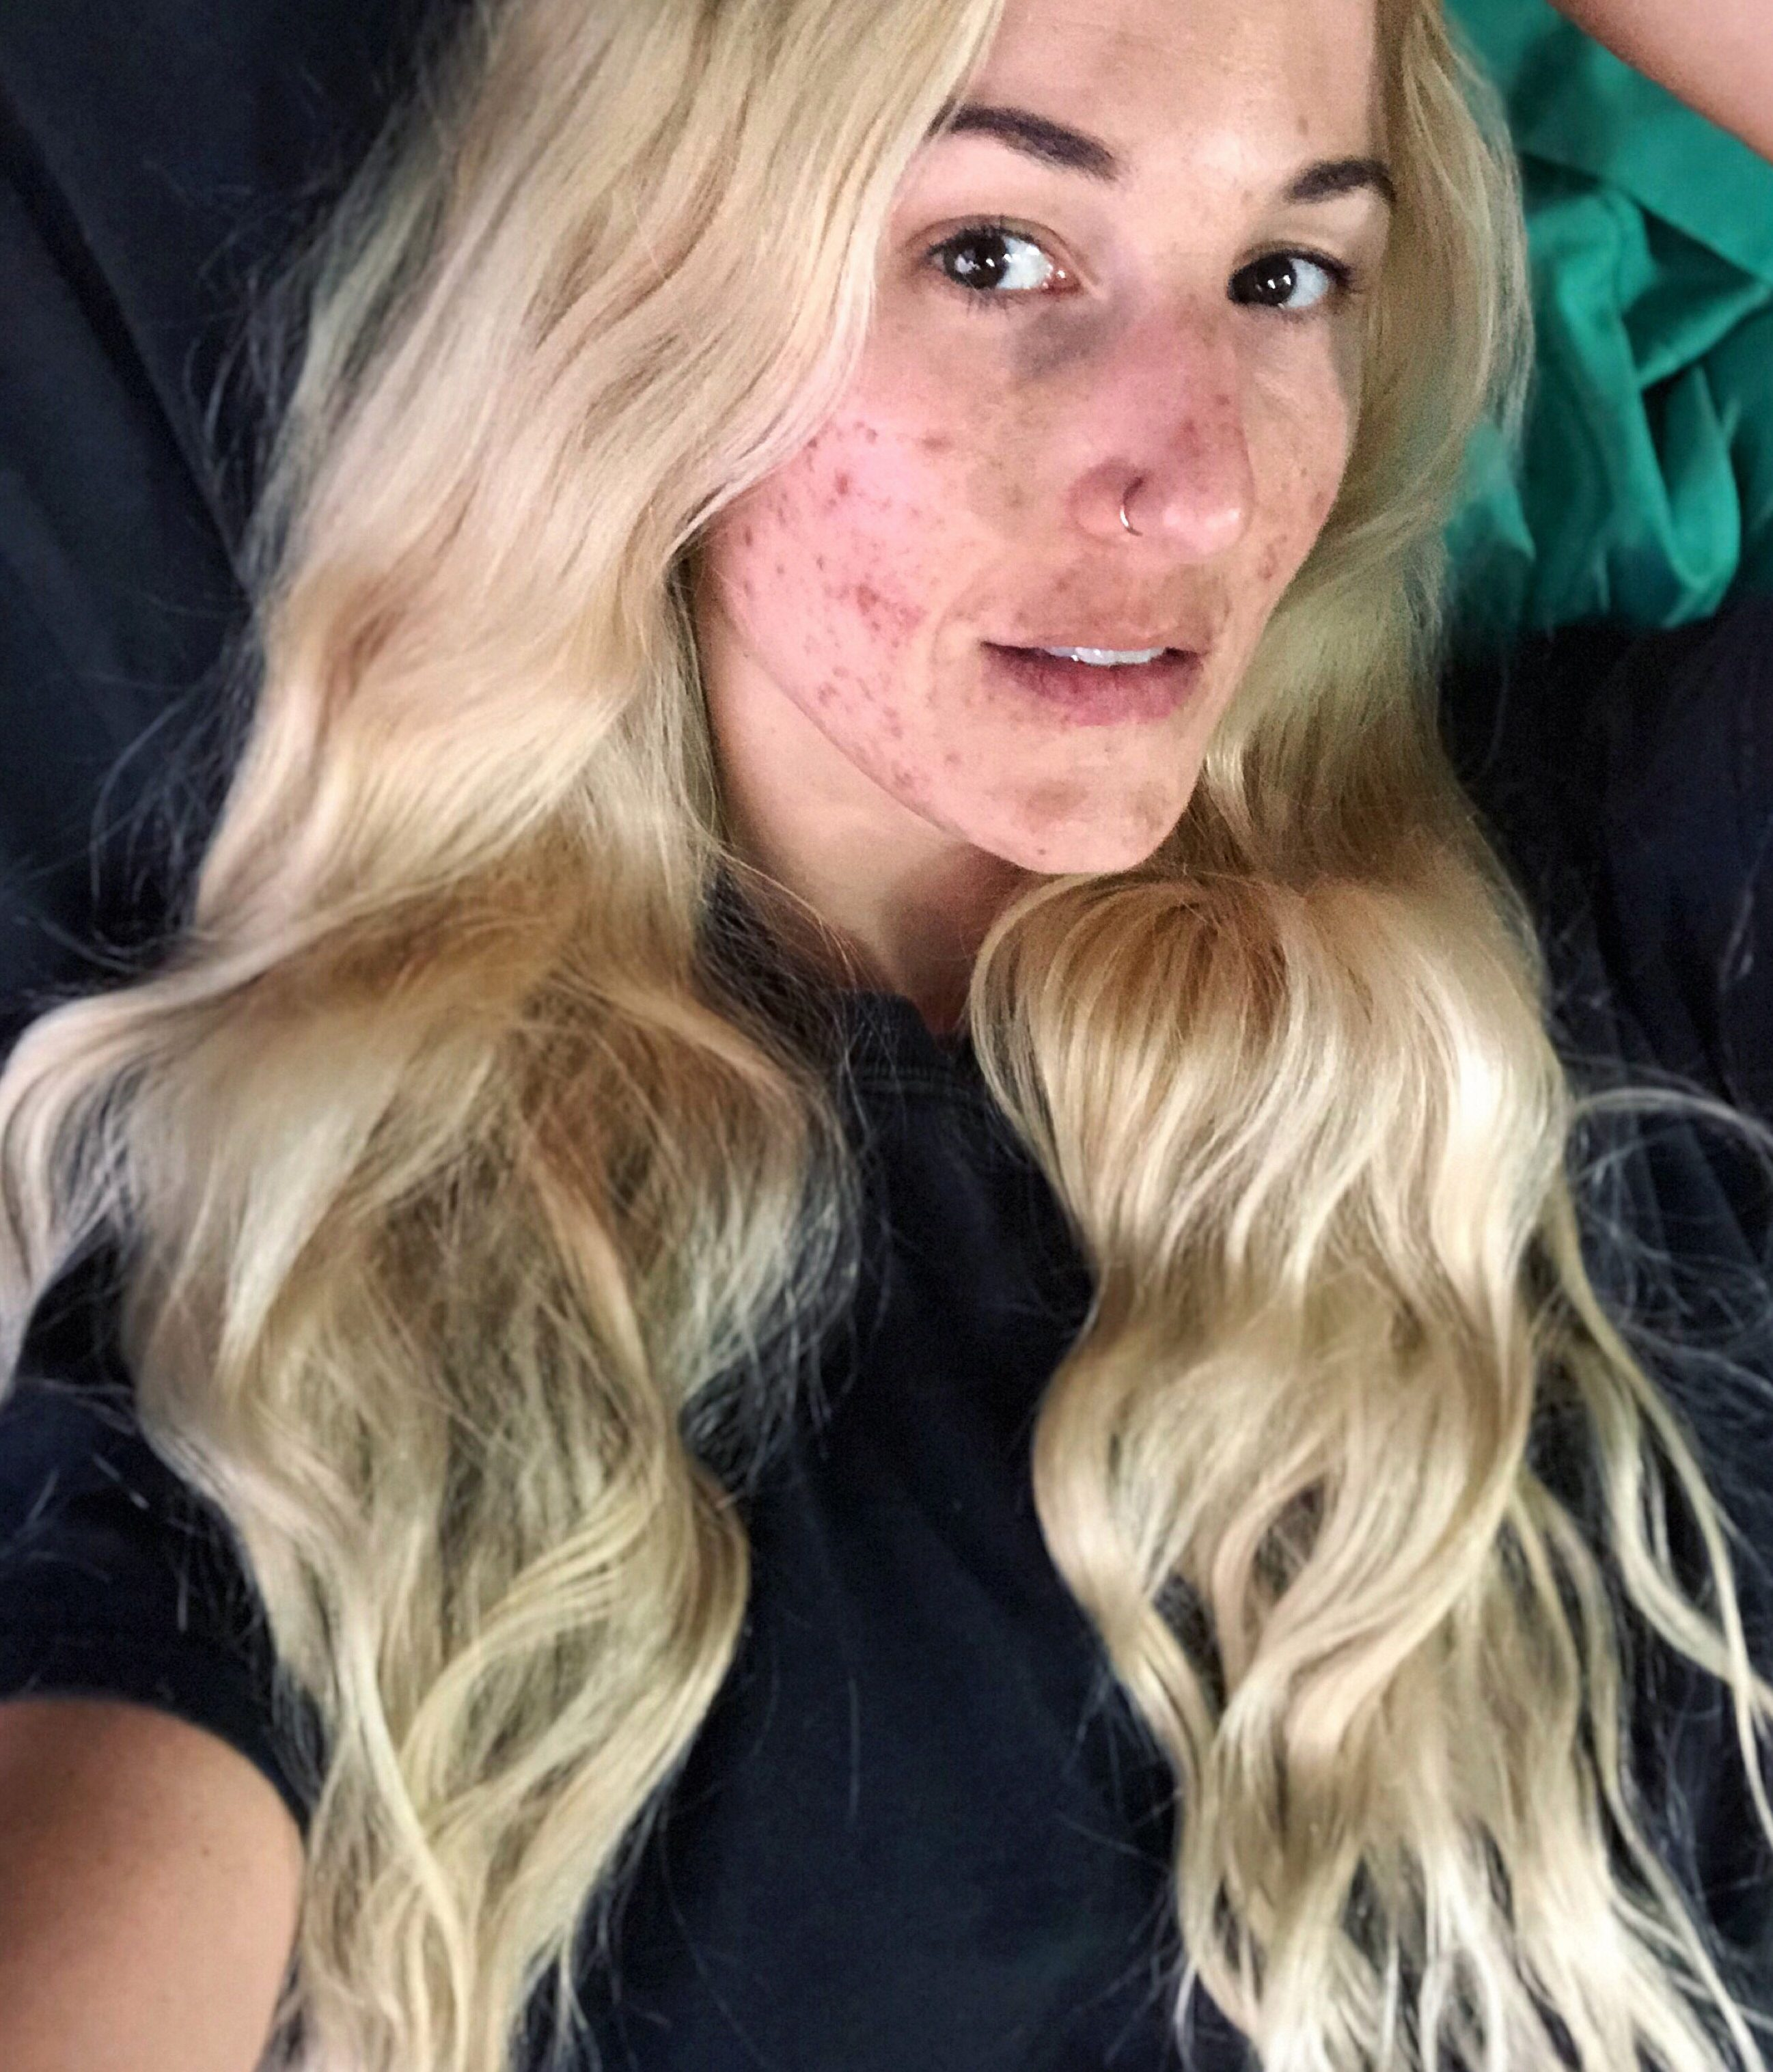 Kat developed cystic acne when she turned 30